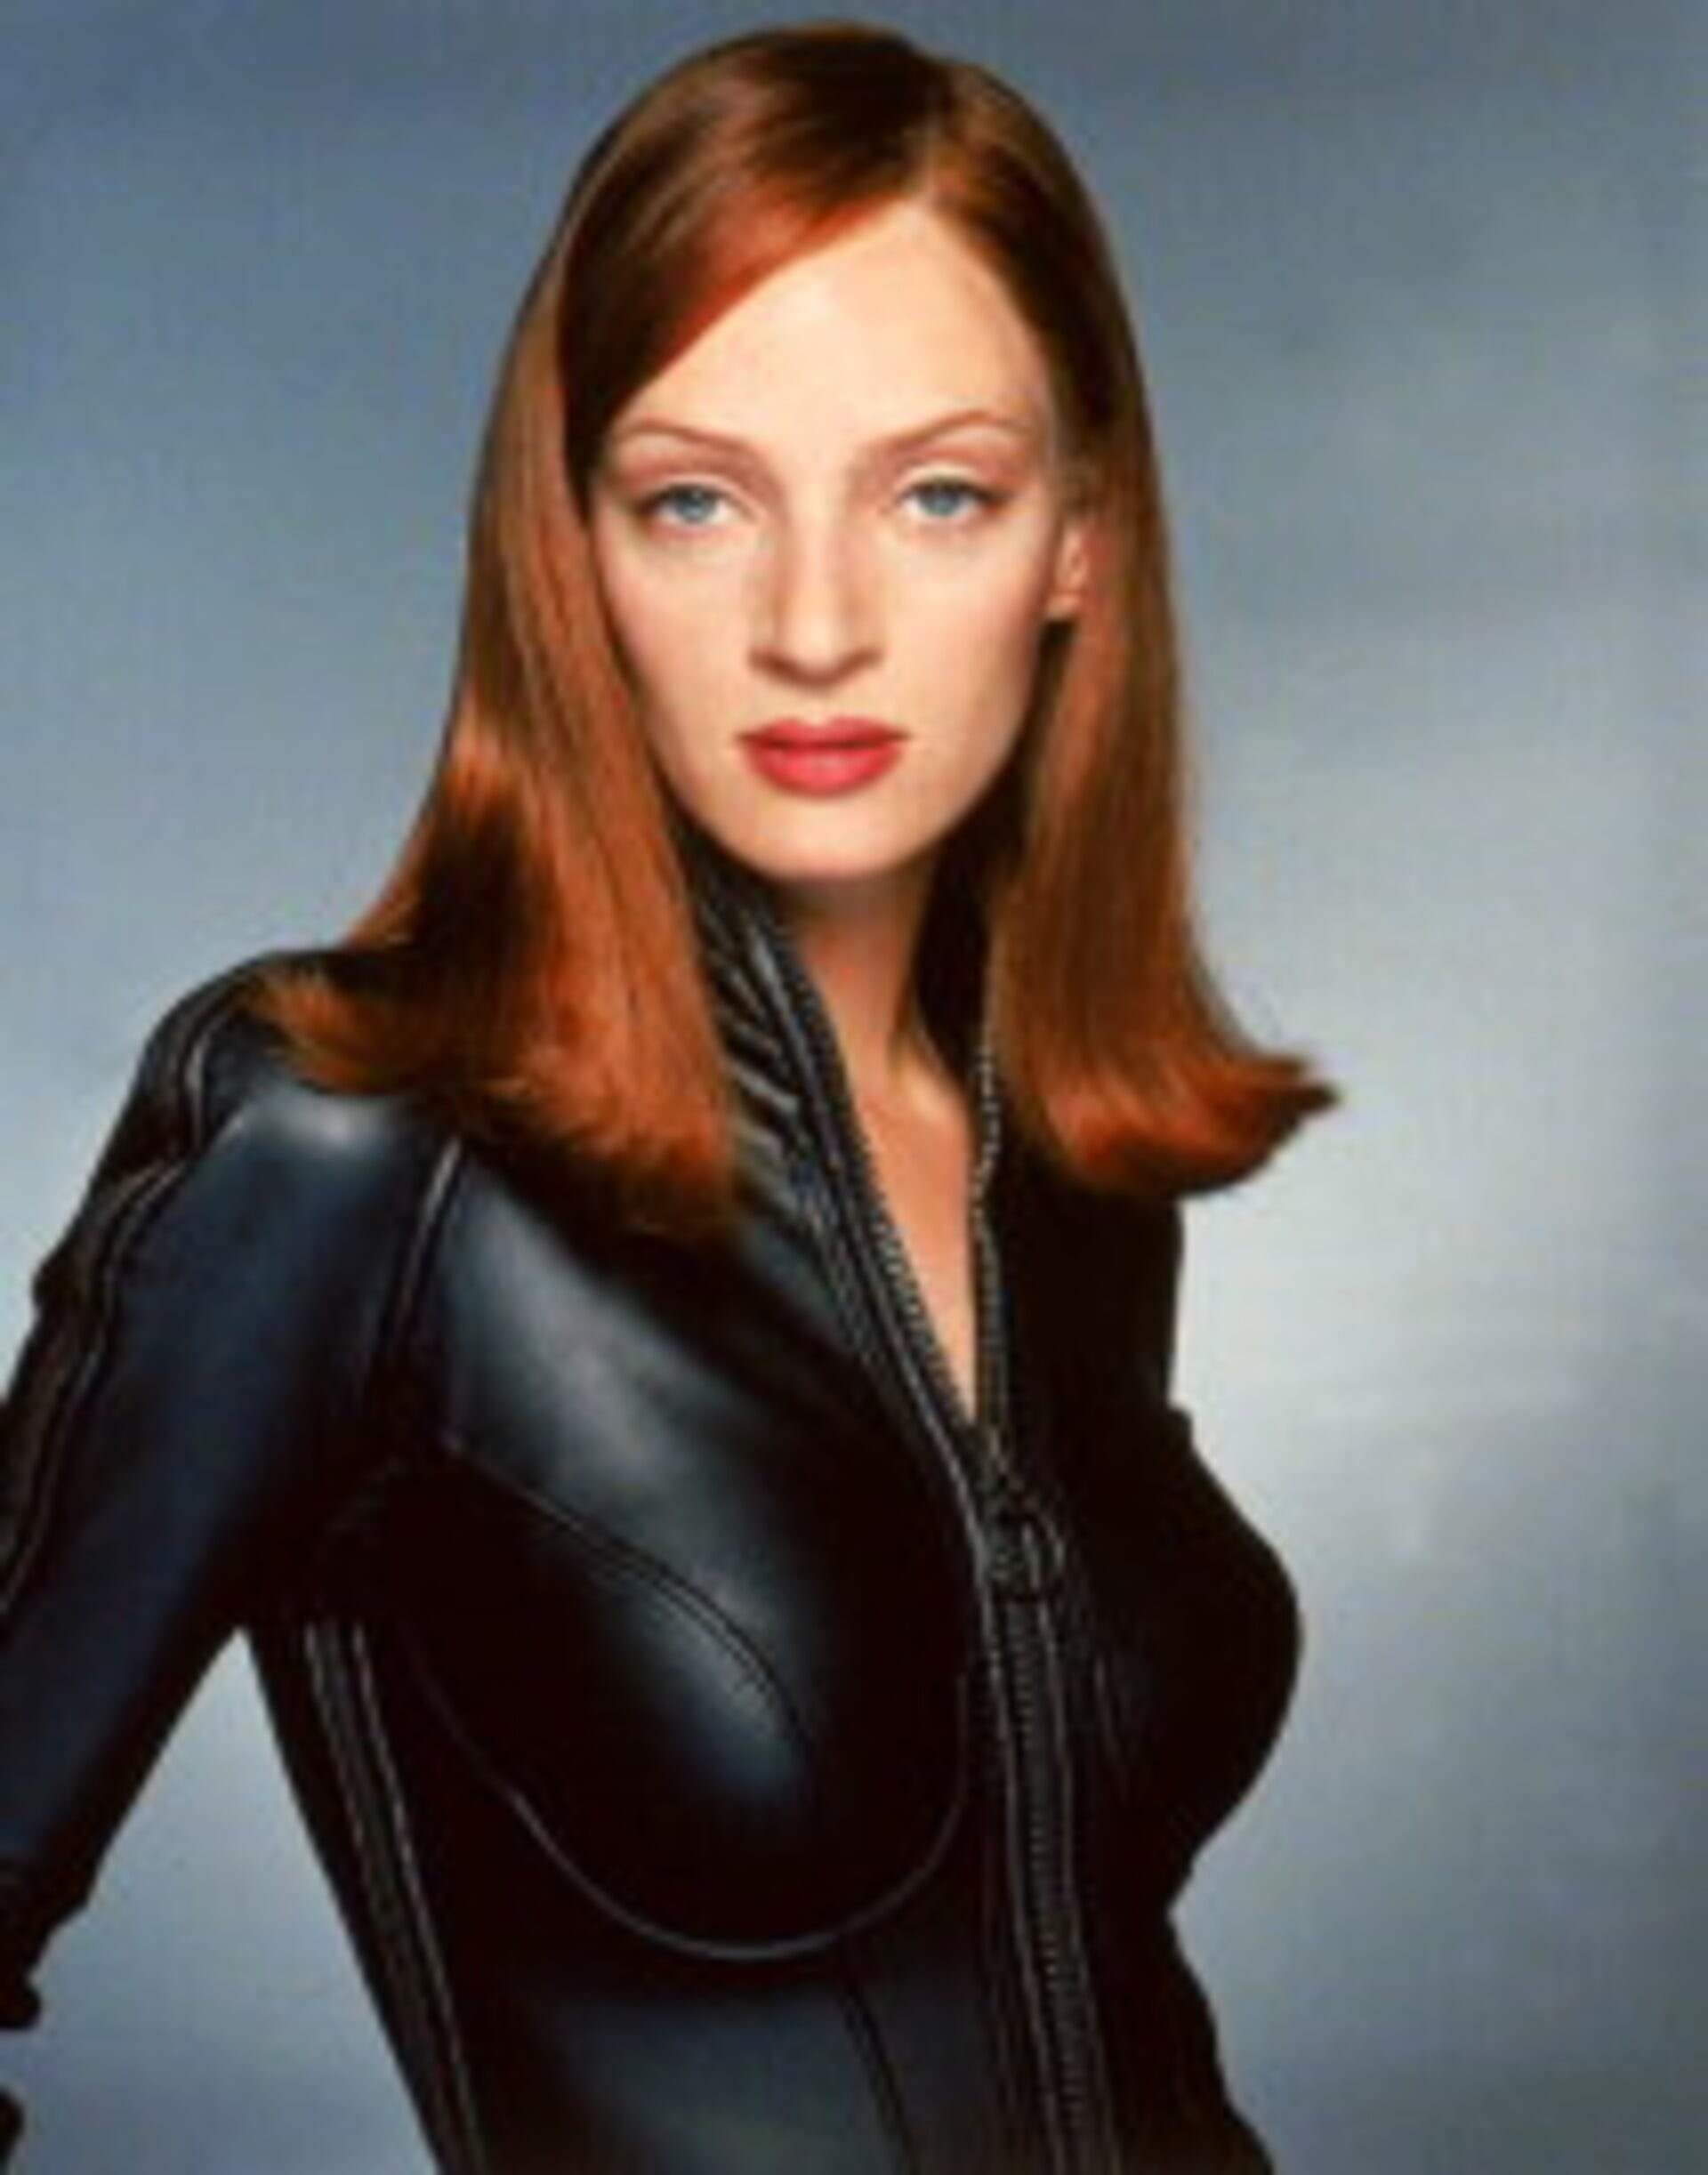 The Avengers - Image 7